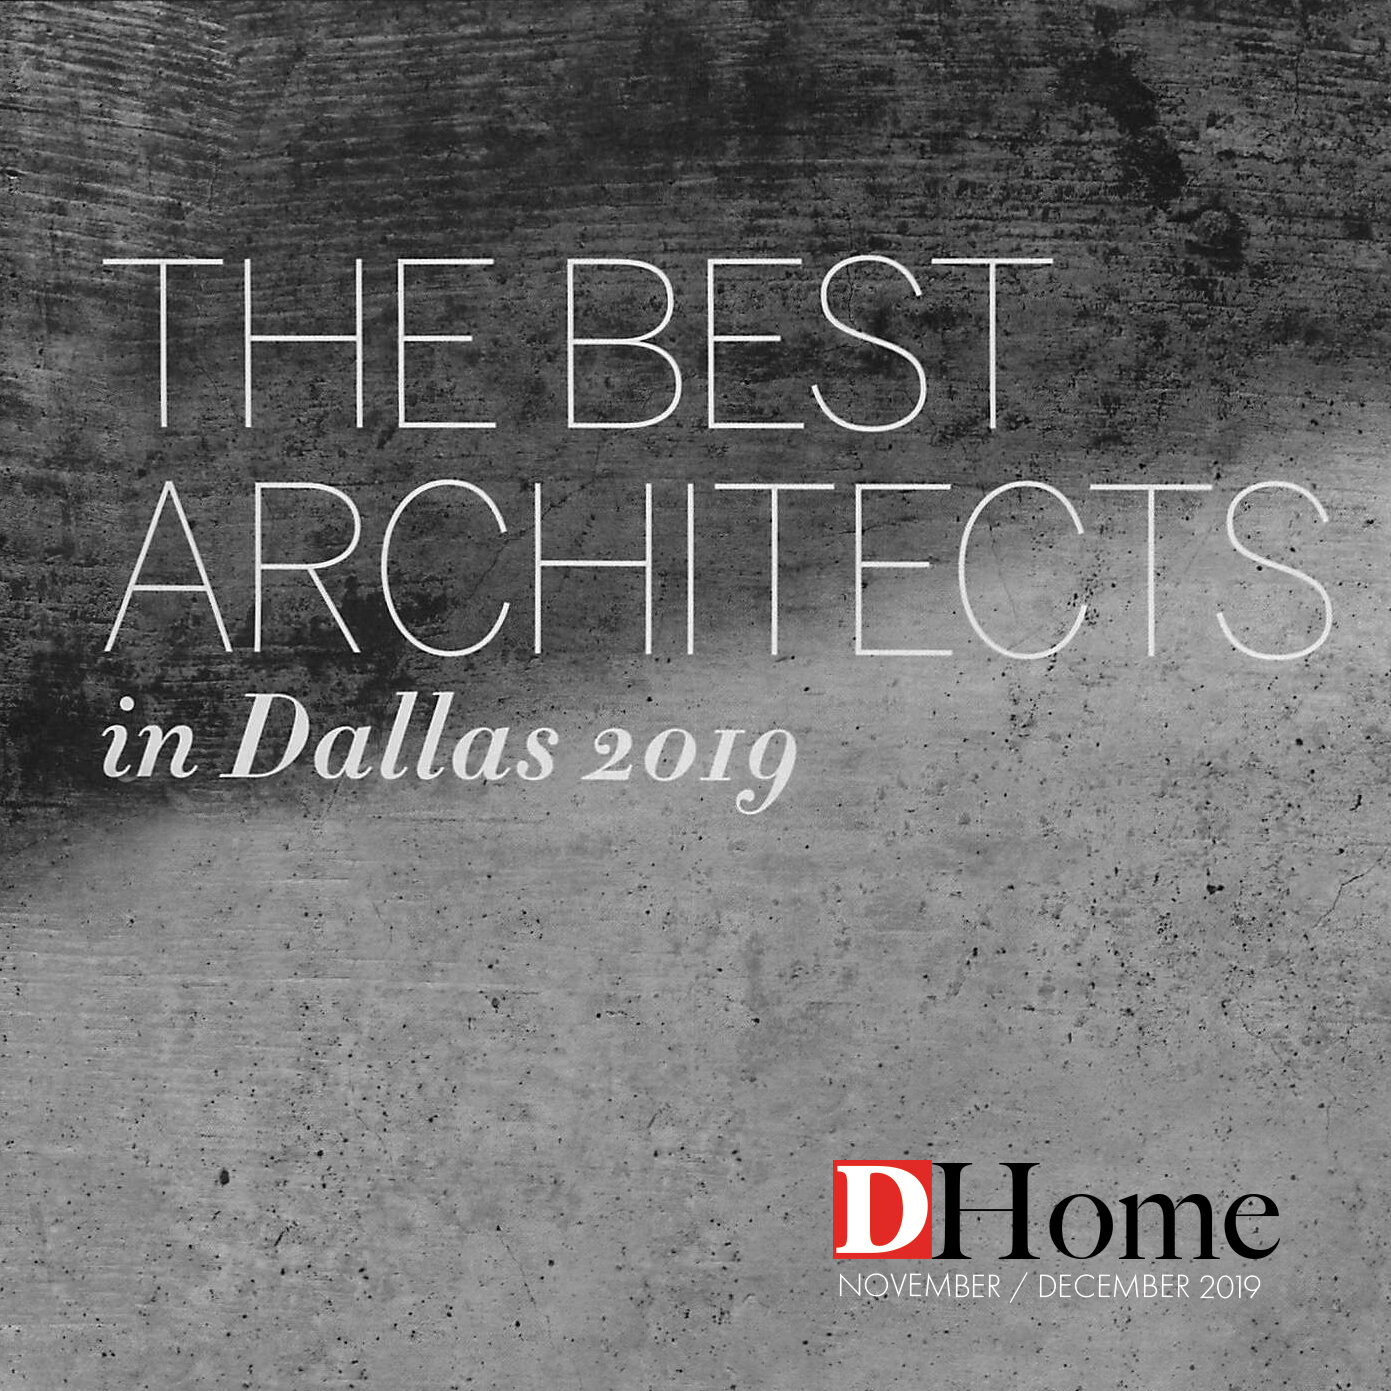 We are proud to announce  Cliff Welch, AIA  was listed in D Home among The  2019 BEST ARCHITECTS IN DALLAS